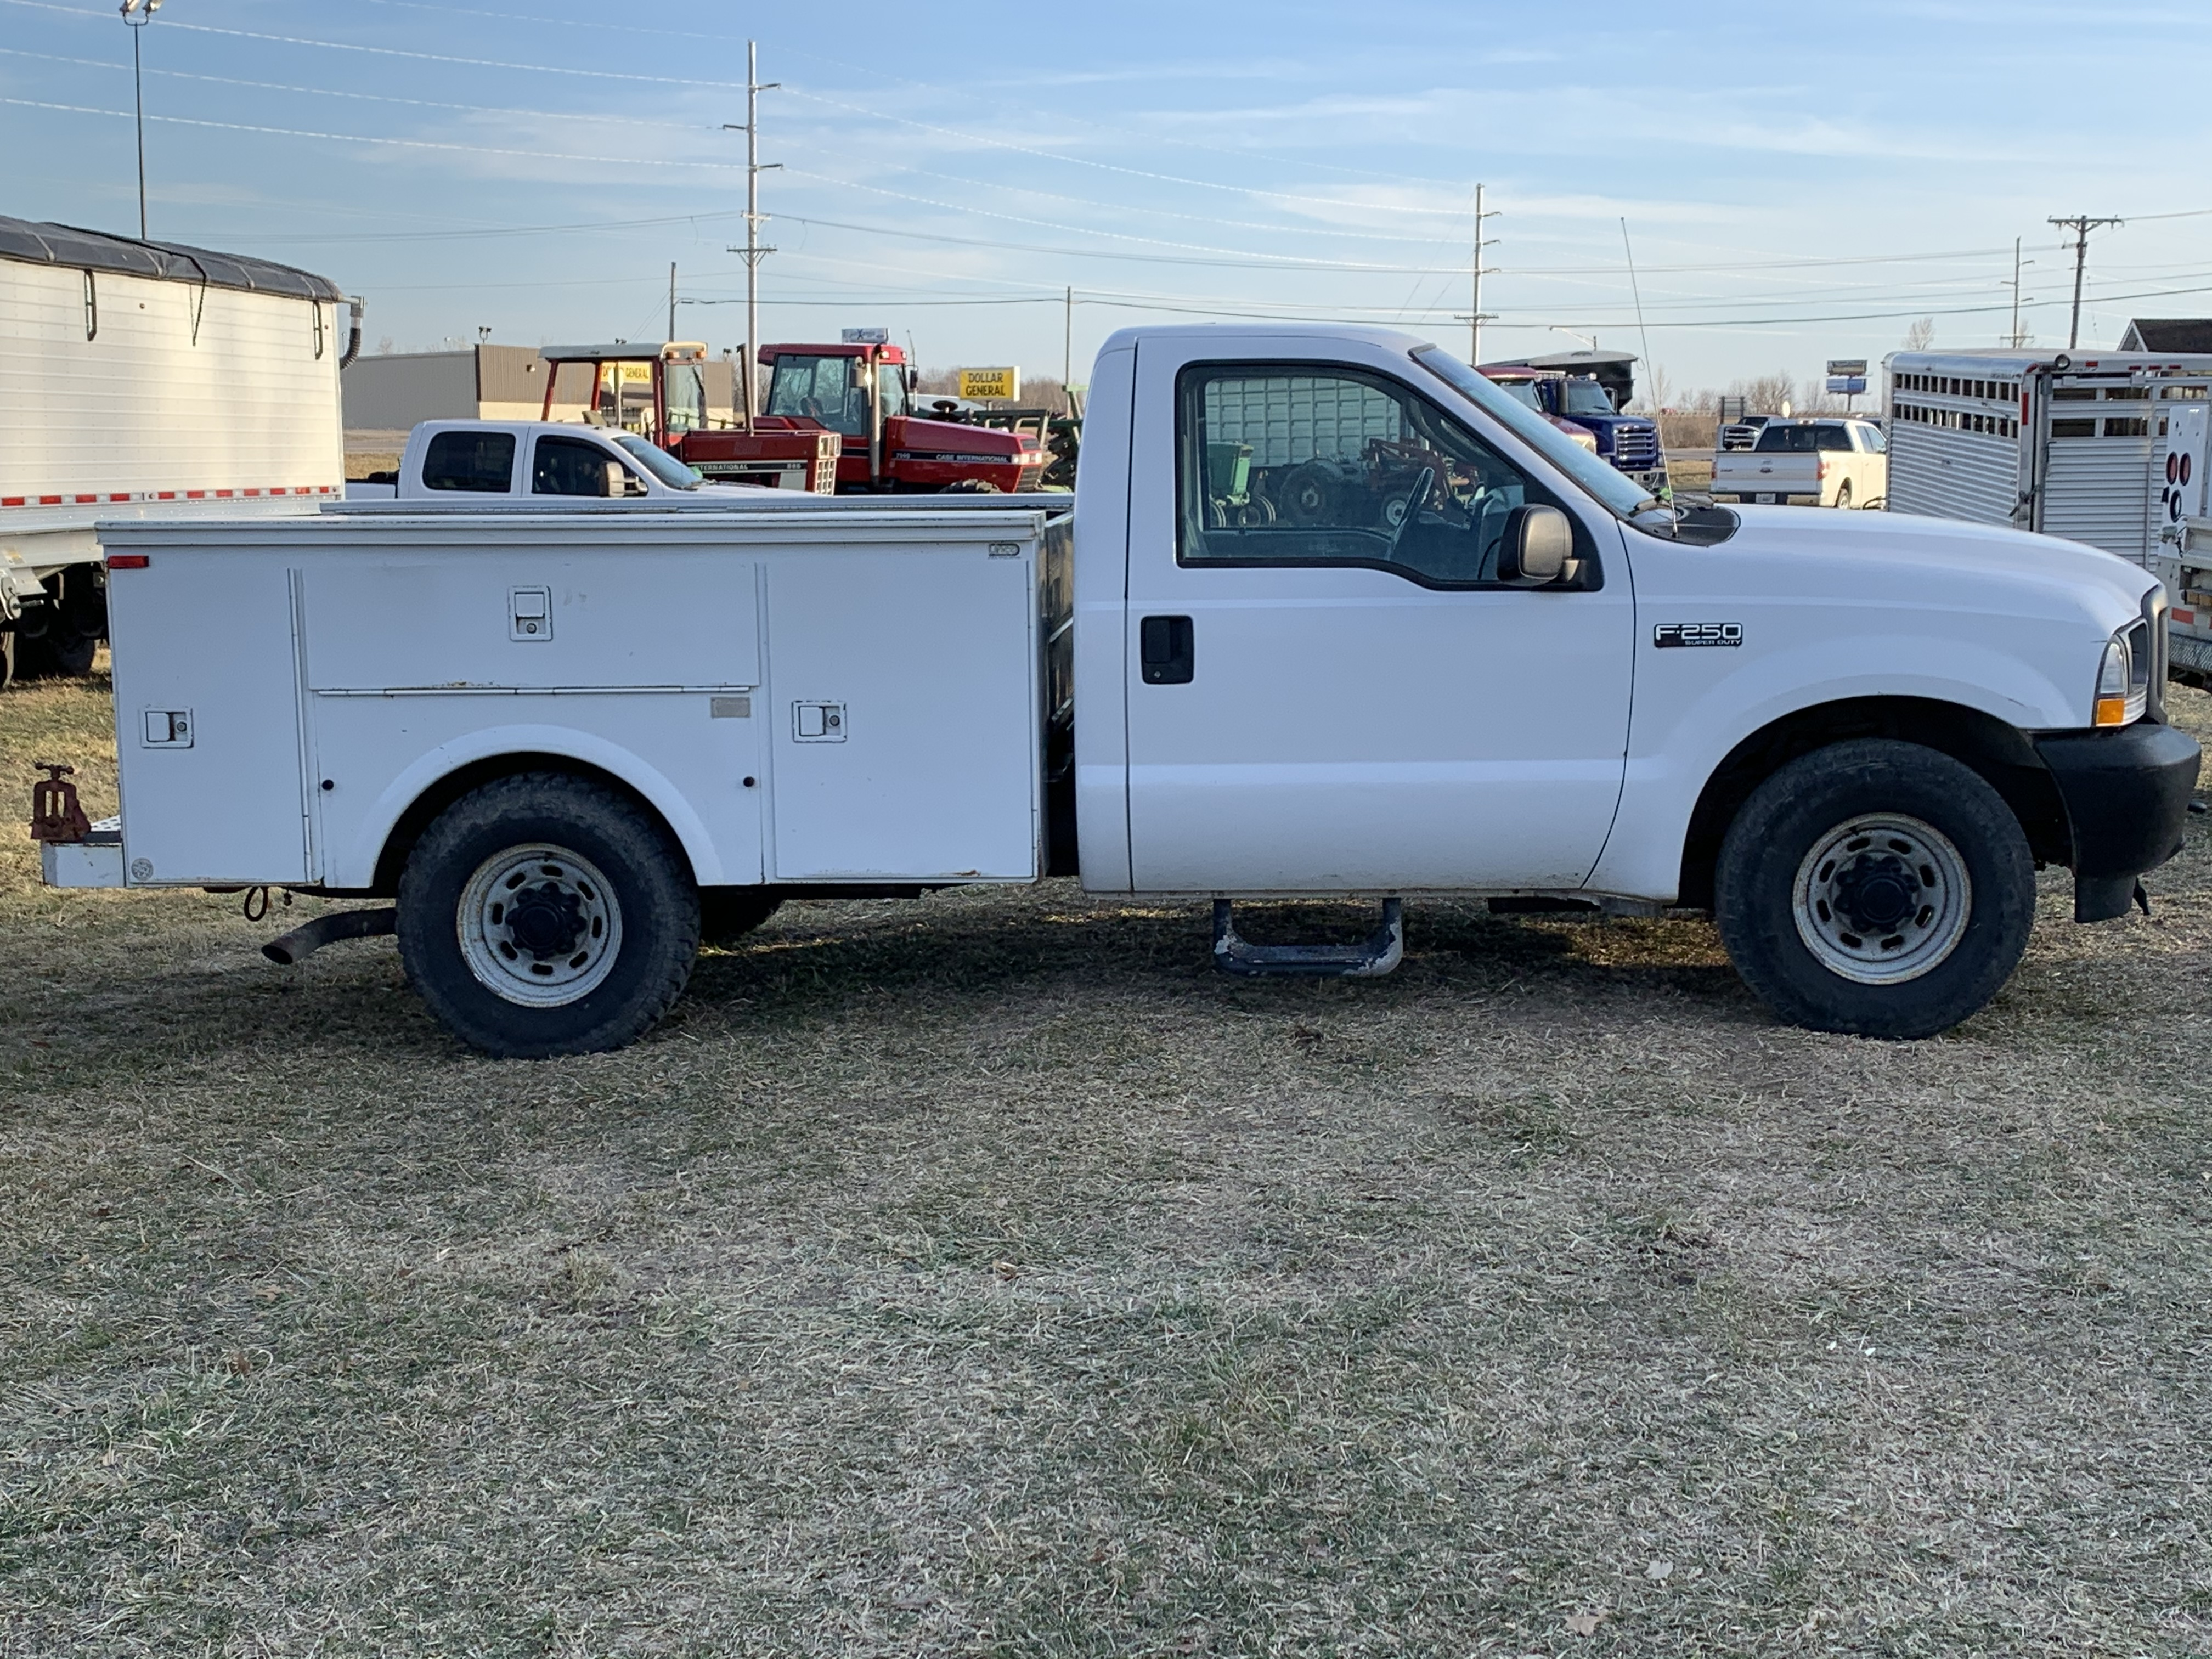 Lot 52 - 2003 Ford F-250 Gas, 2WD, Automatic, Service Truck White